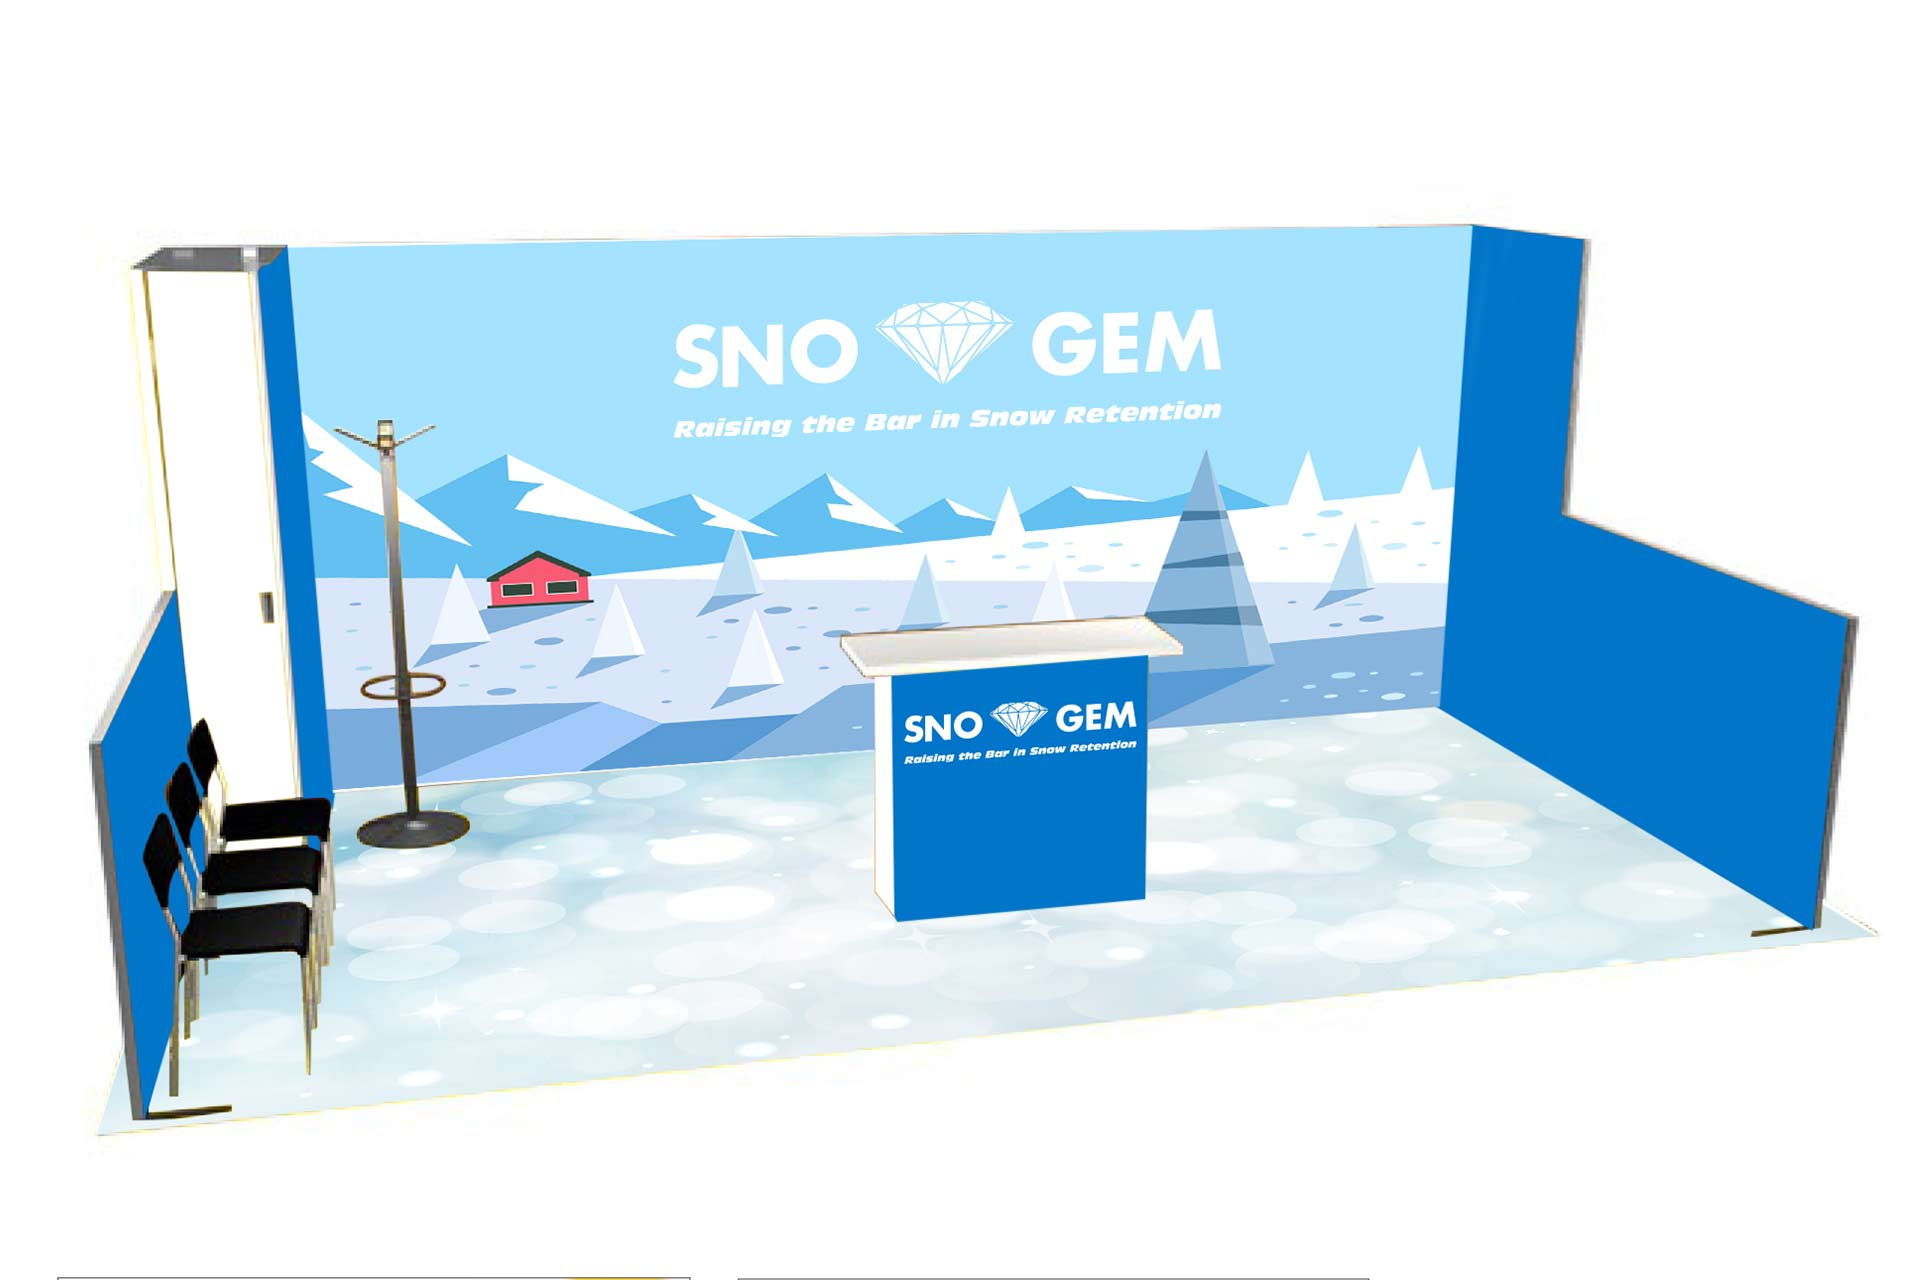 Sno Gem Trade Show Booth - Concept 2